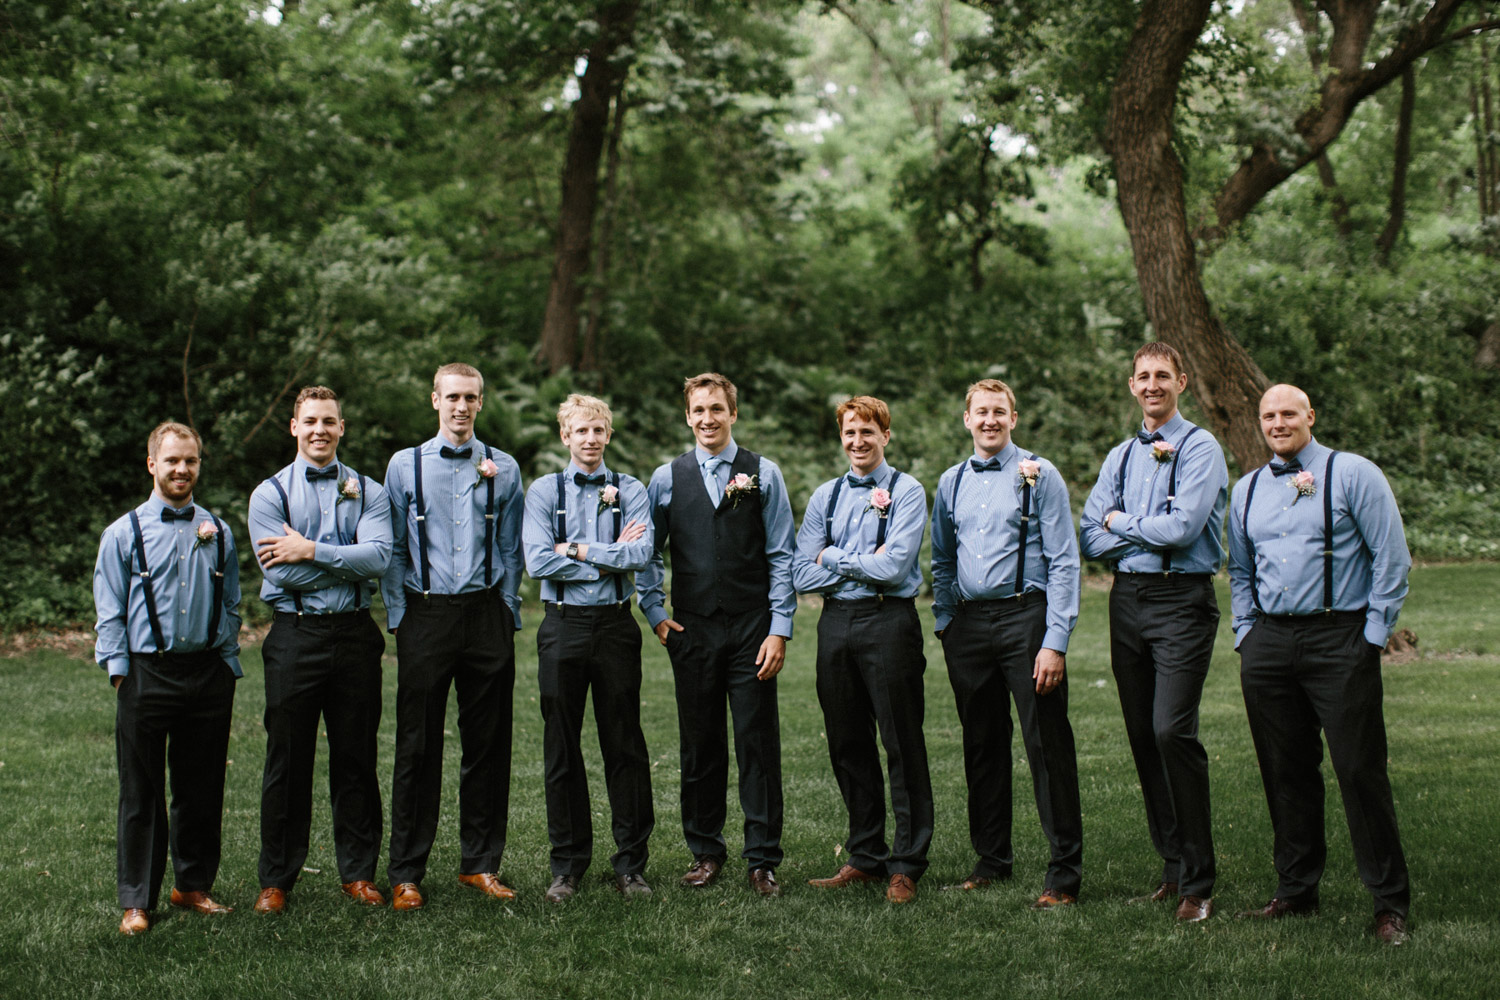 Outdoor_Wedding_SiouxFalls_MaryJoWegnerArboretum_Photographer_Calli&Jon_059.jpg